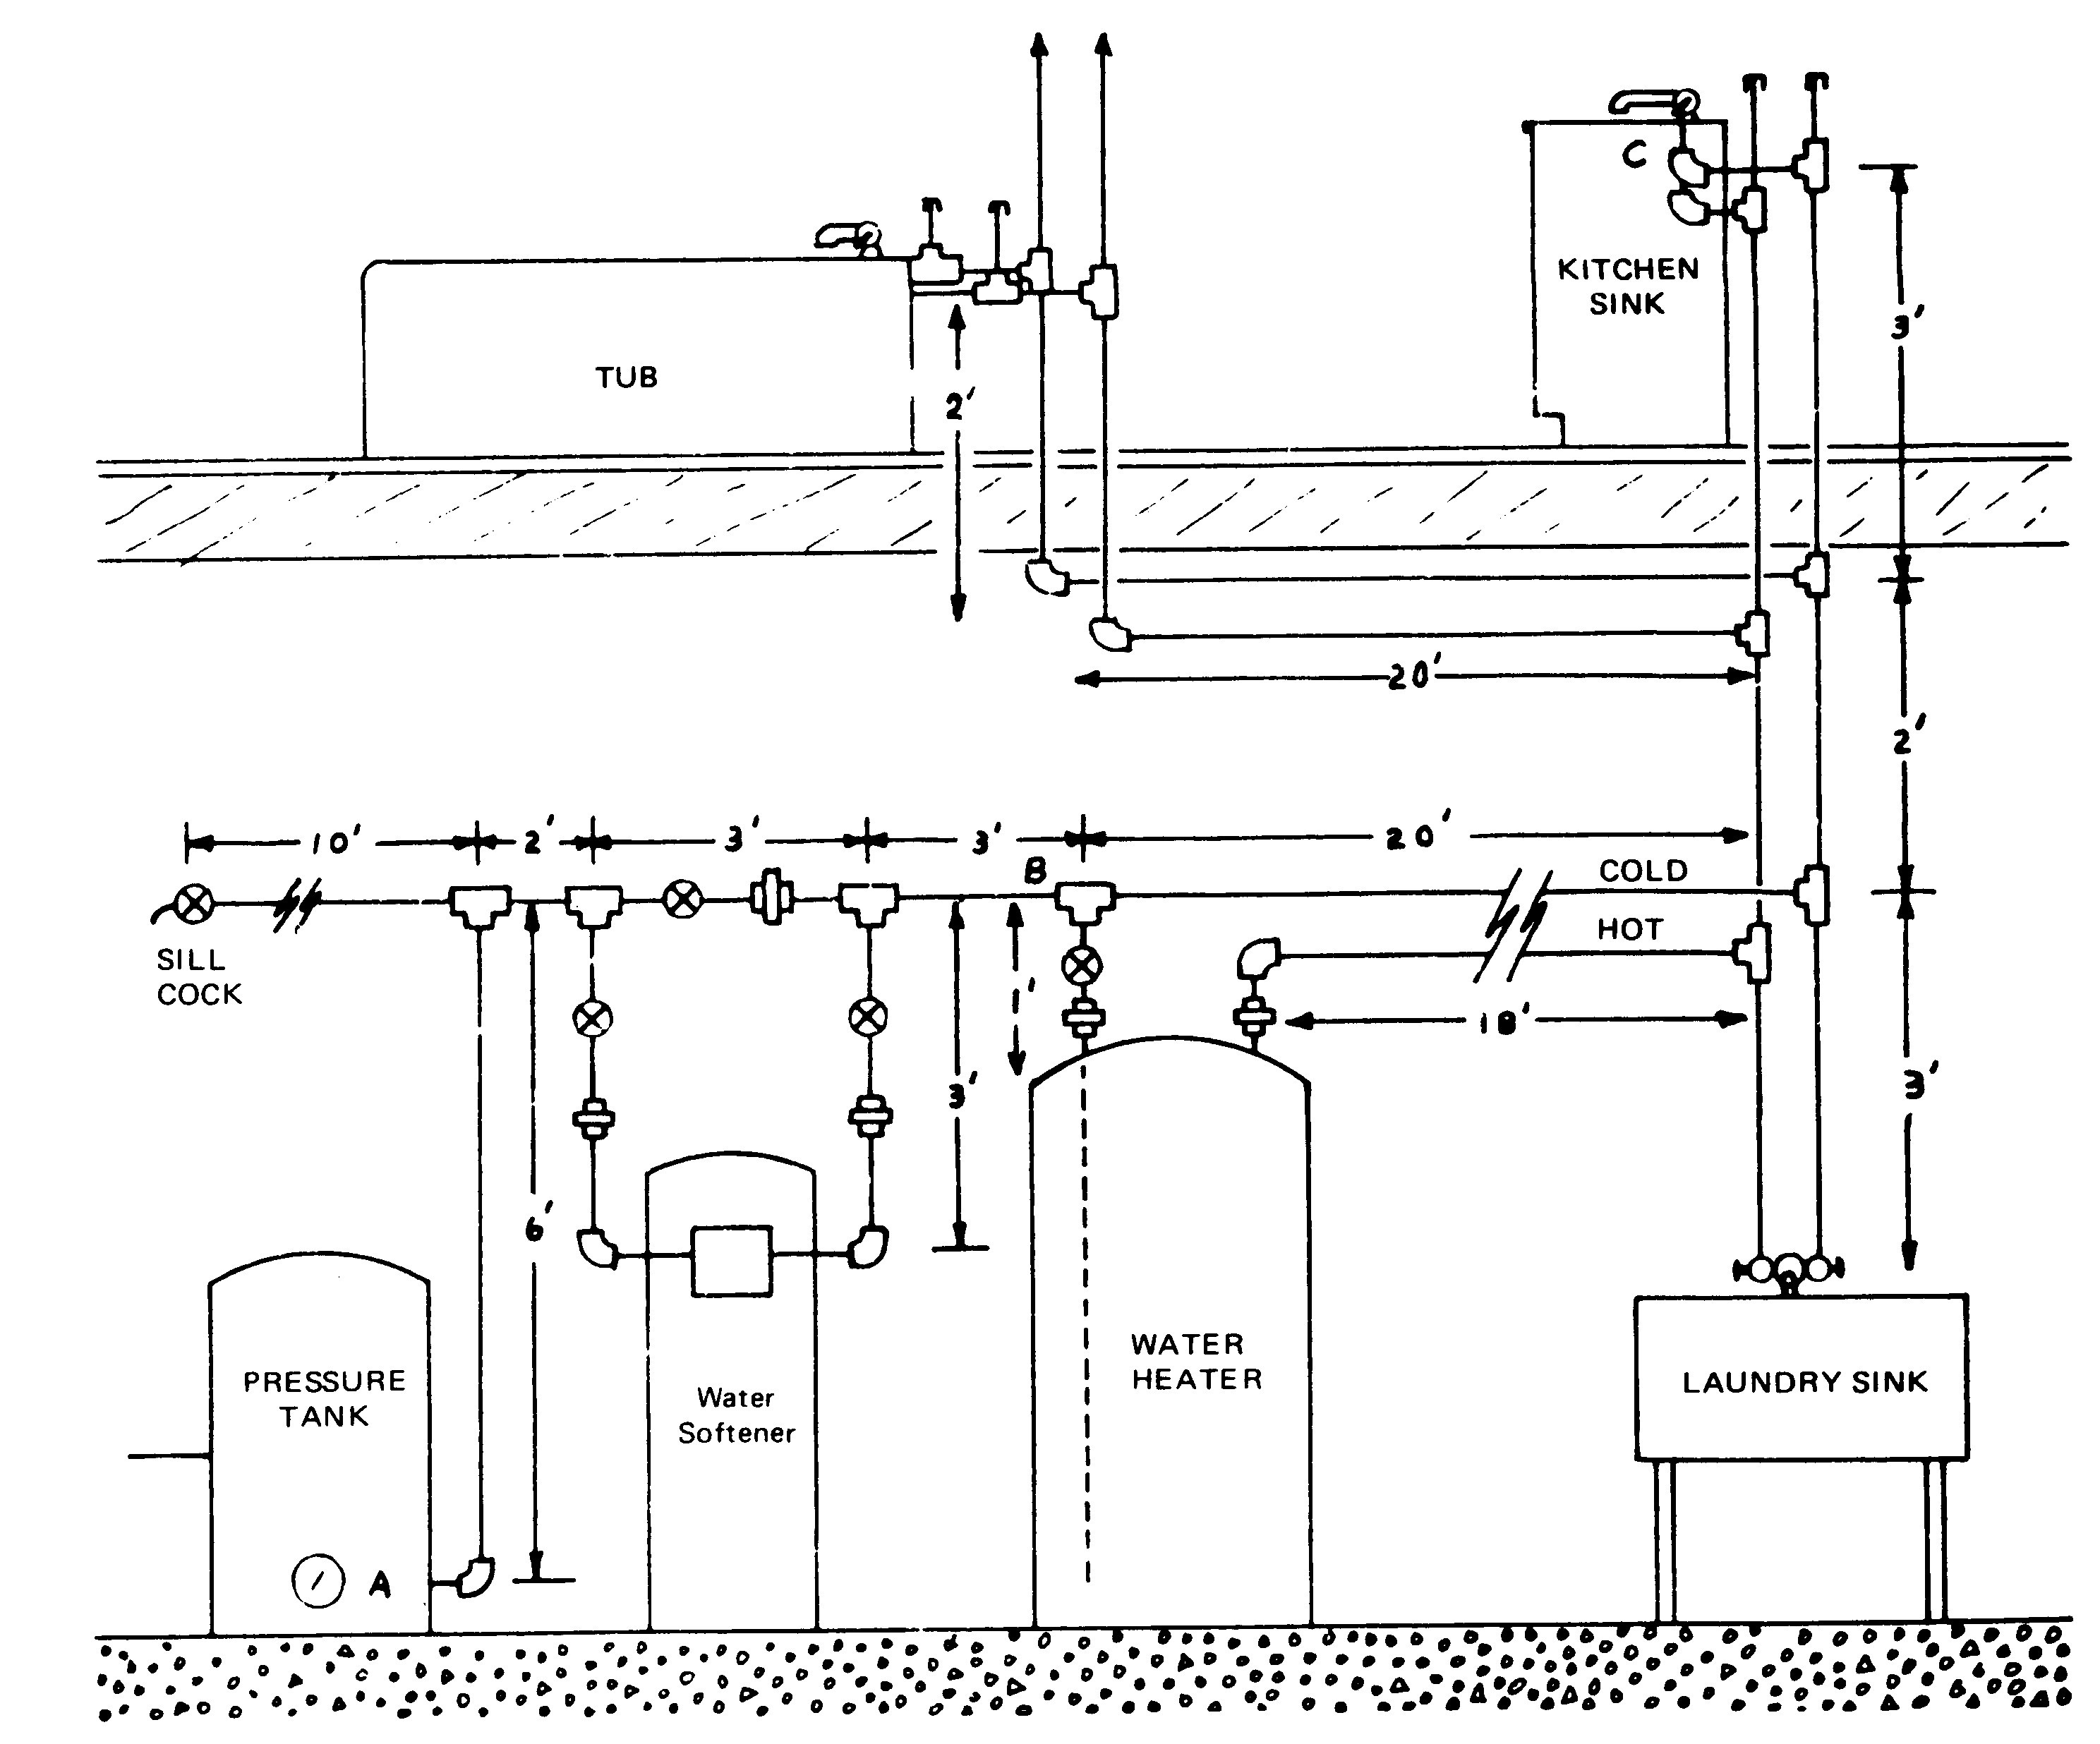 Water softening system schematic waste water systems for Plumbing schematic